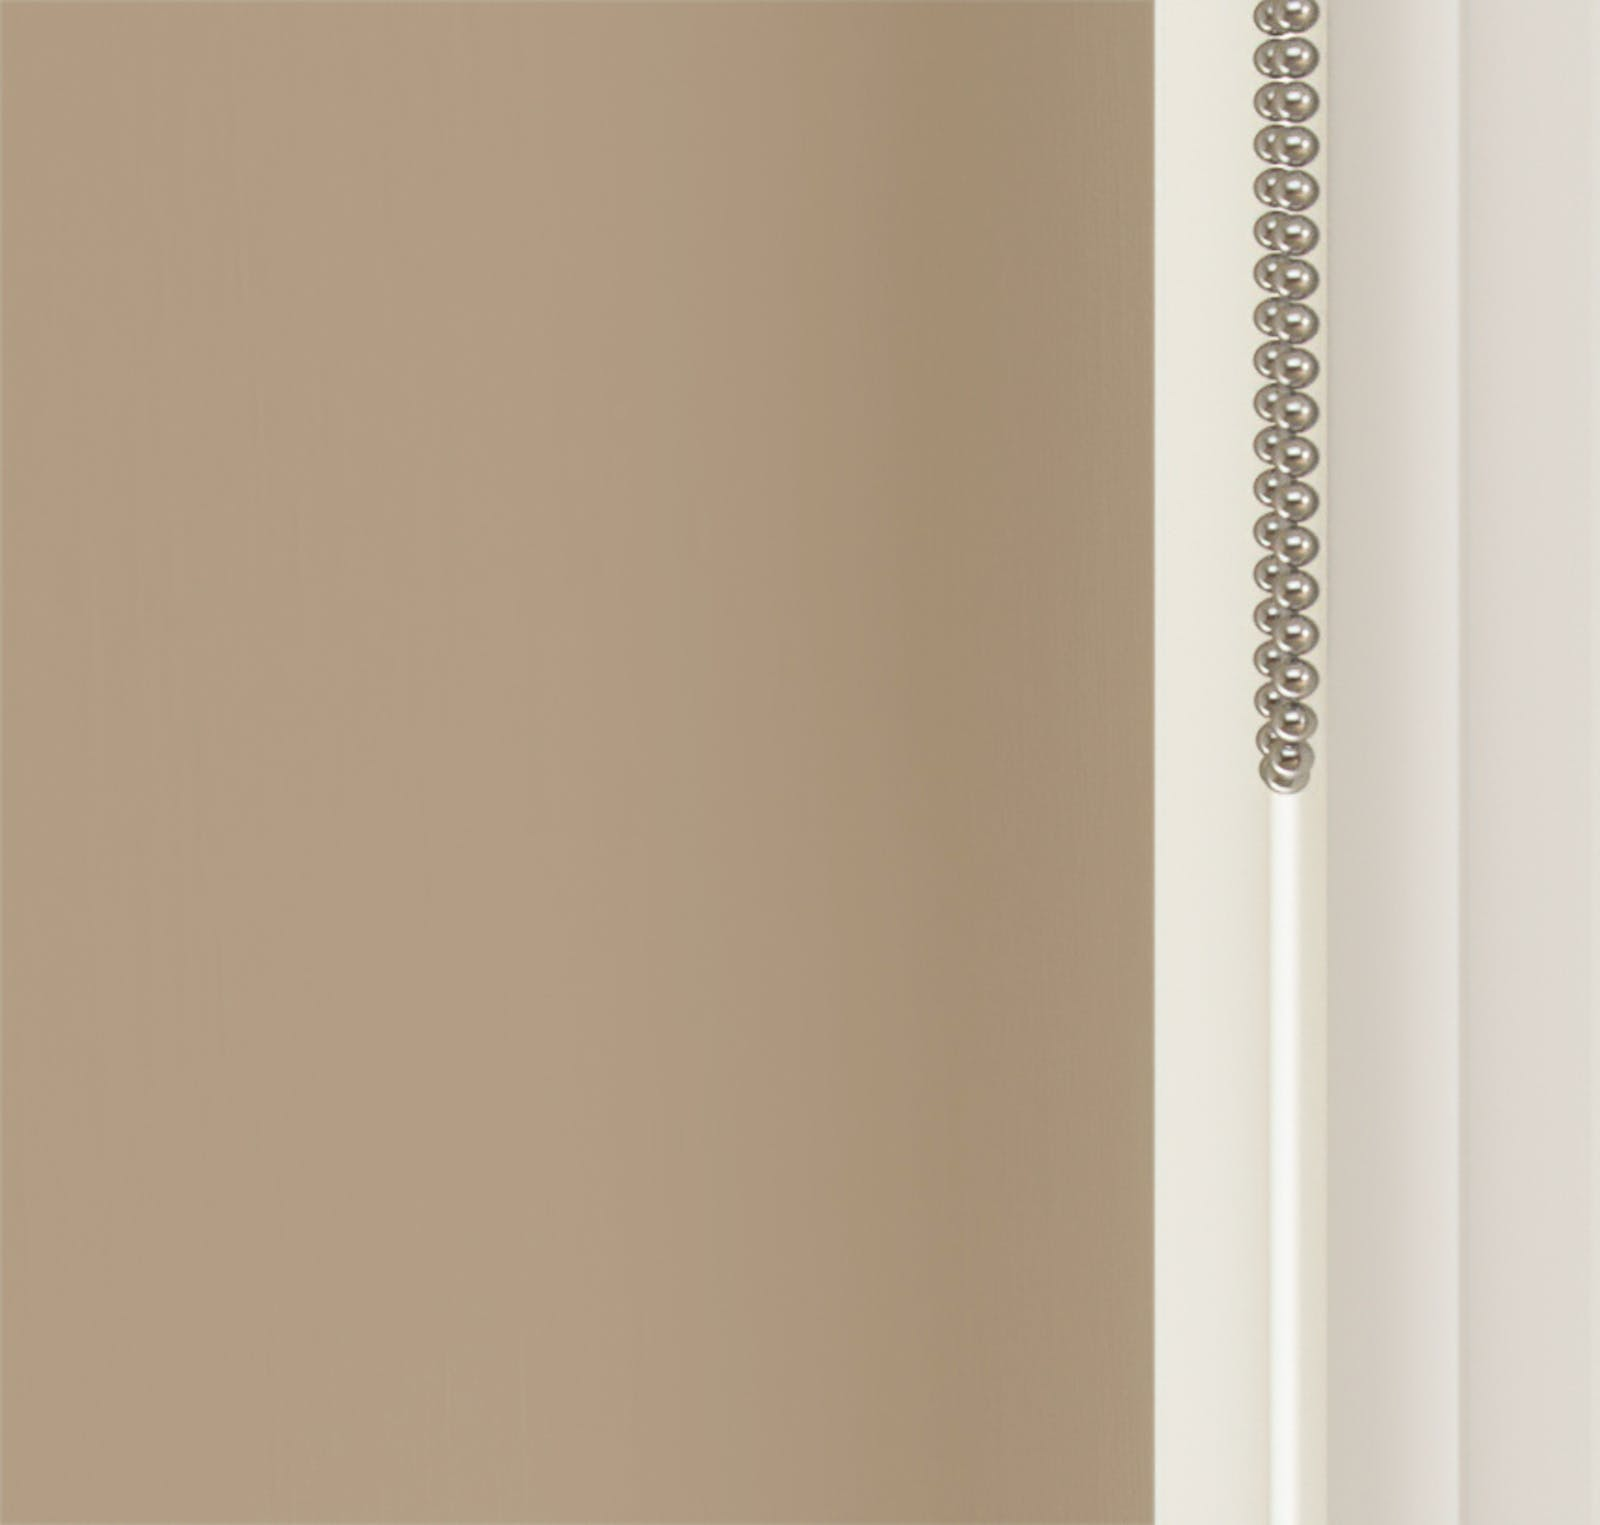 Close up view of Lick Beige 02 roller blinds